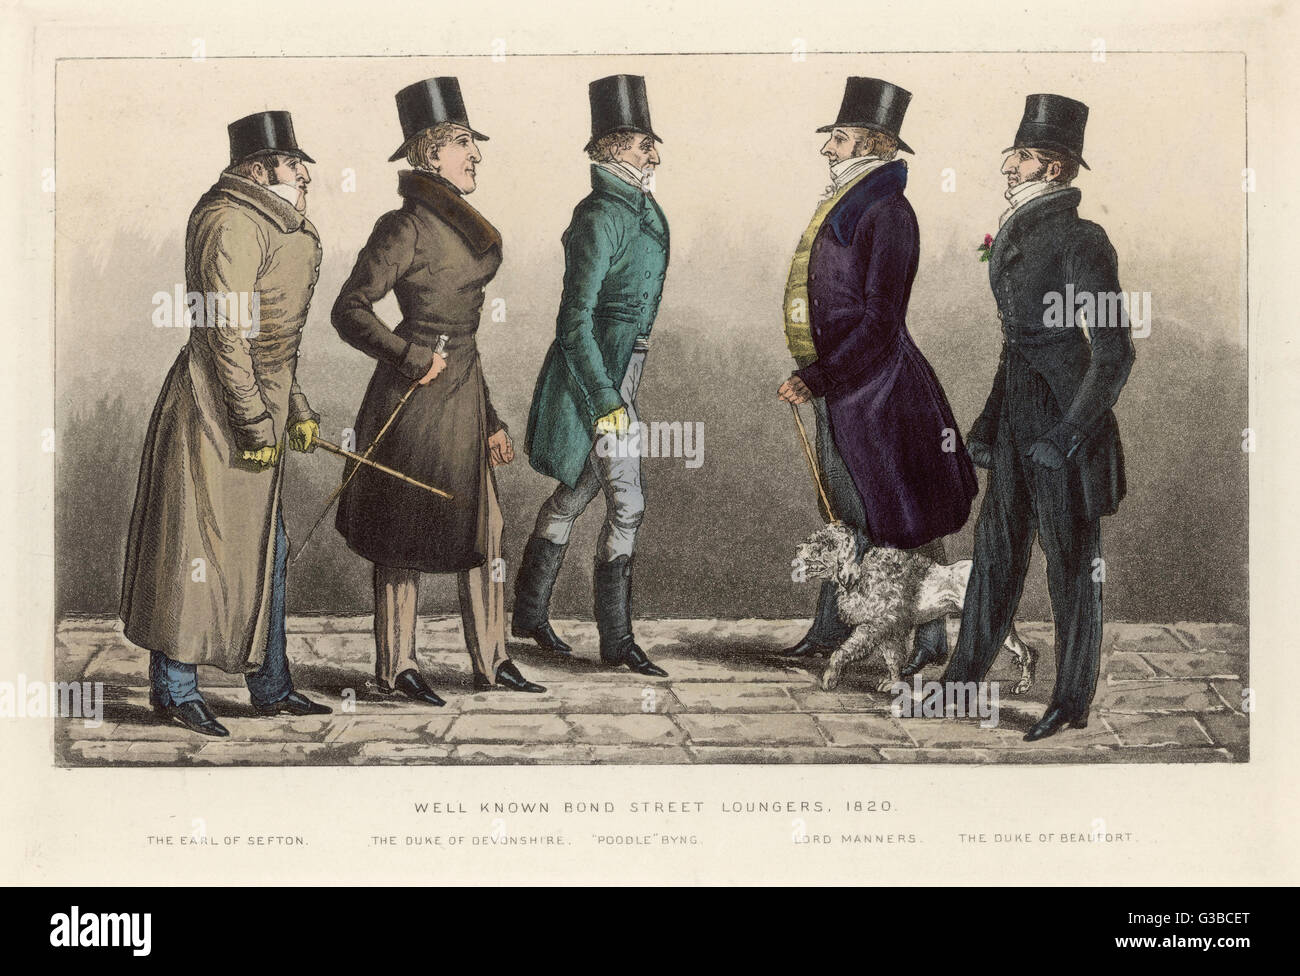 Bond Street 'Loungers' wear:  strapped trousers, hessian  boots, greatcoat, frock coat,  top hats, buttonhole, - Stock Image